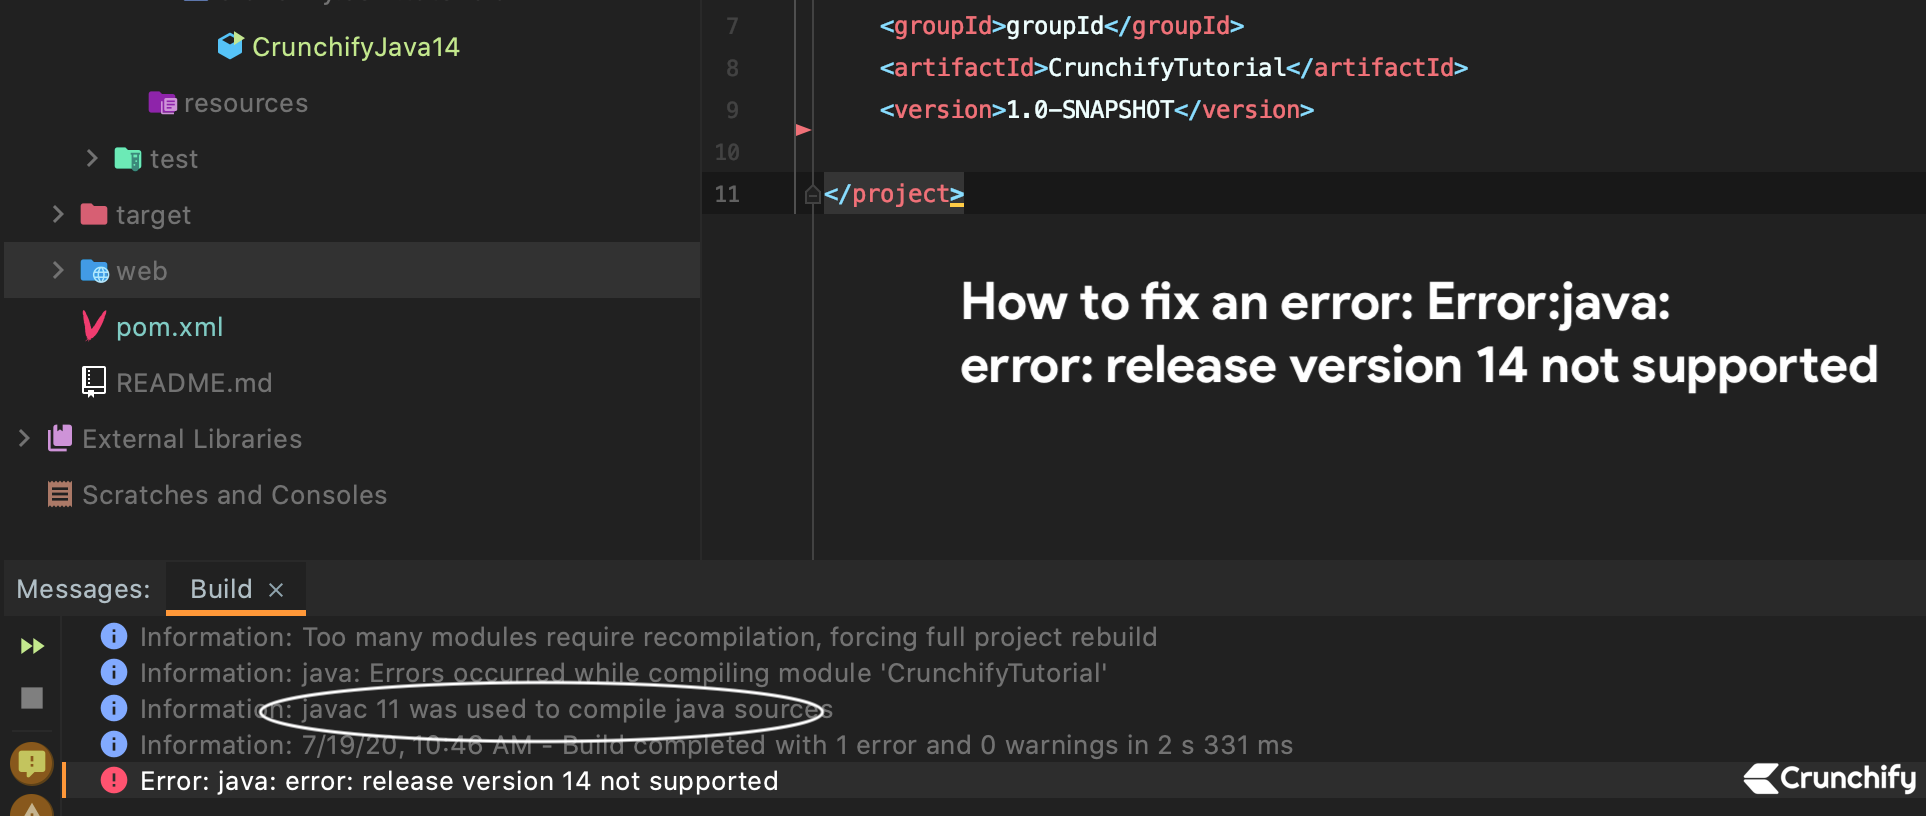 How to fix an error Error java release version 14 not supported